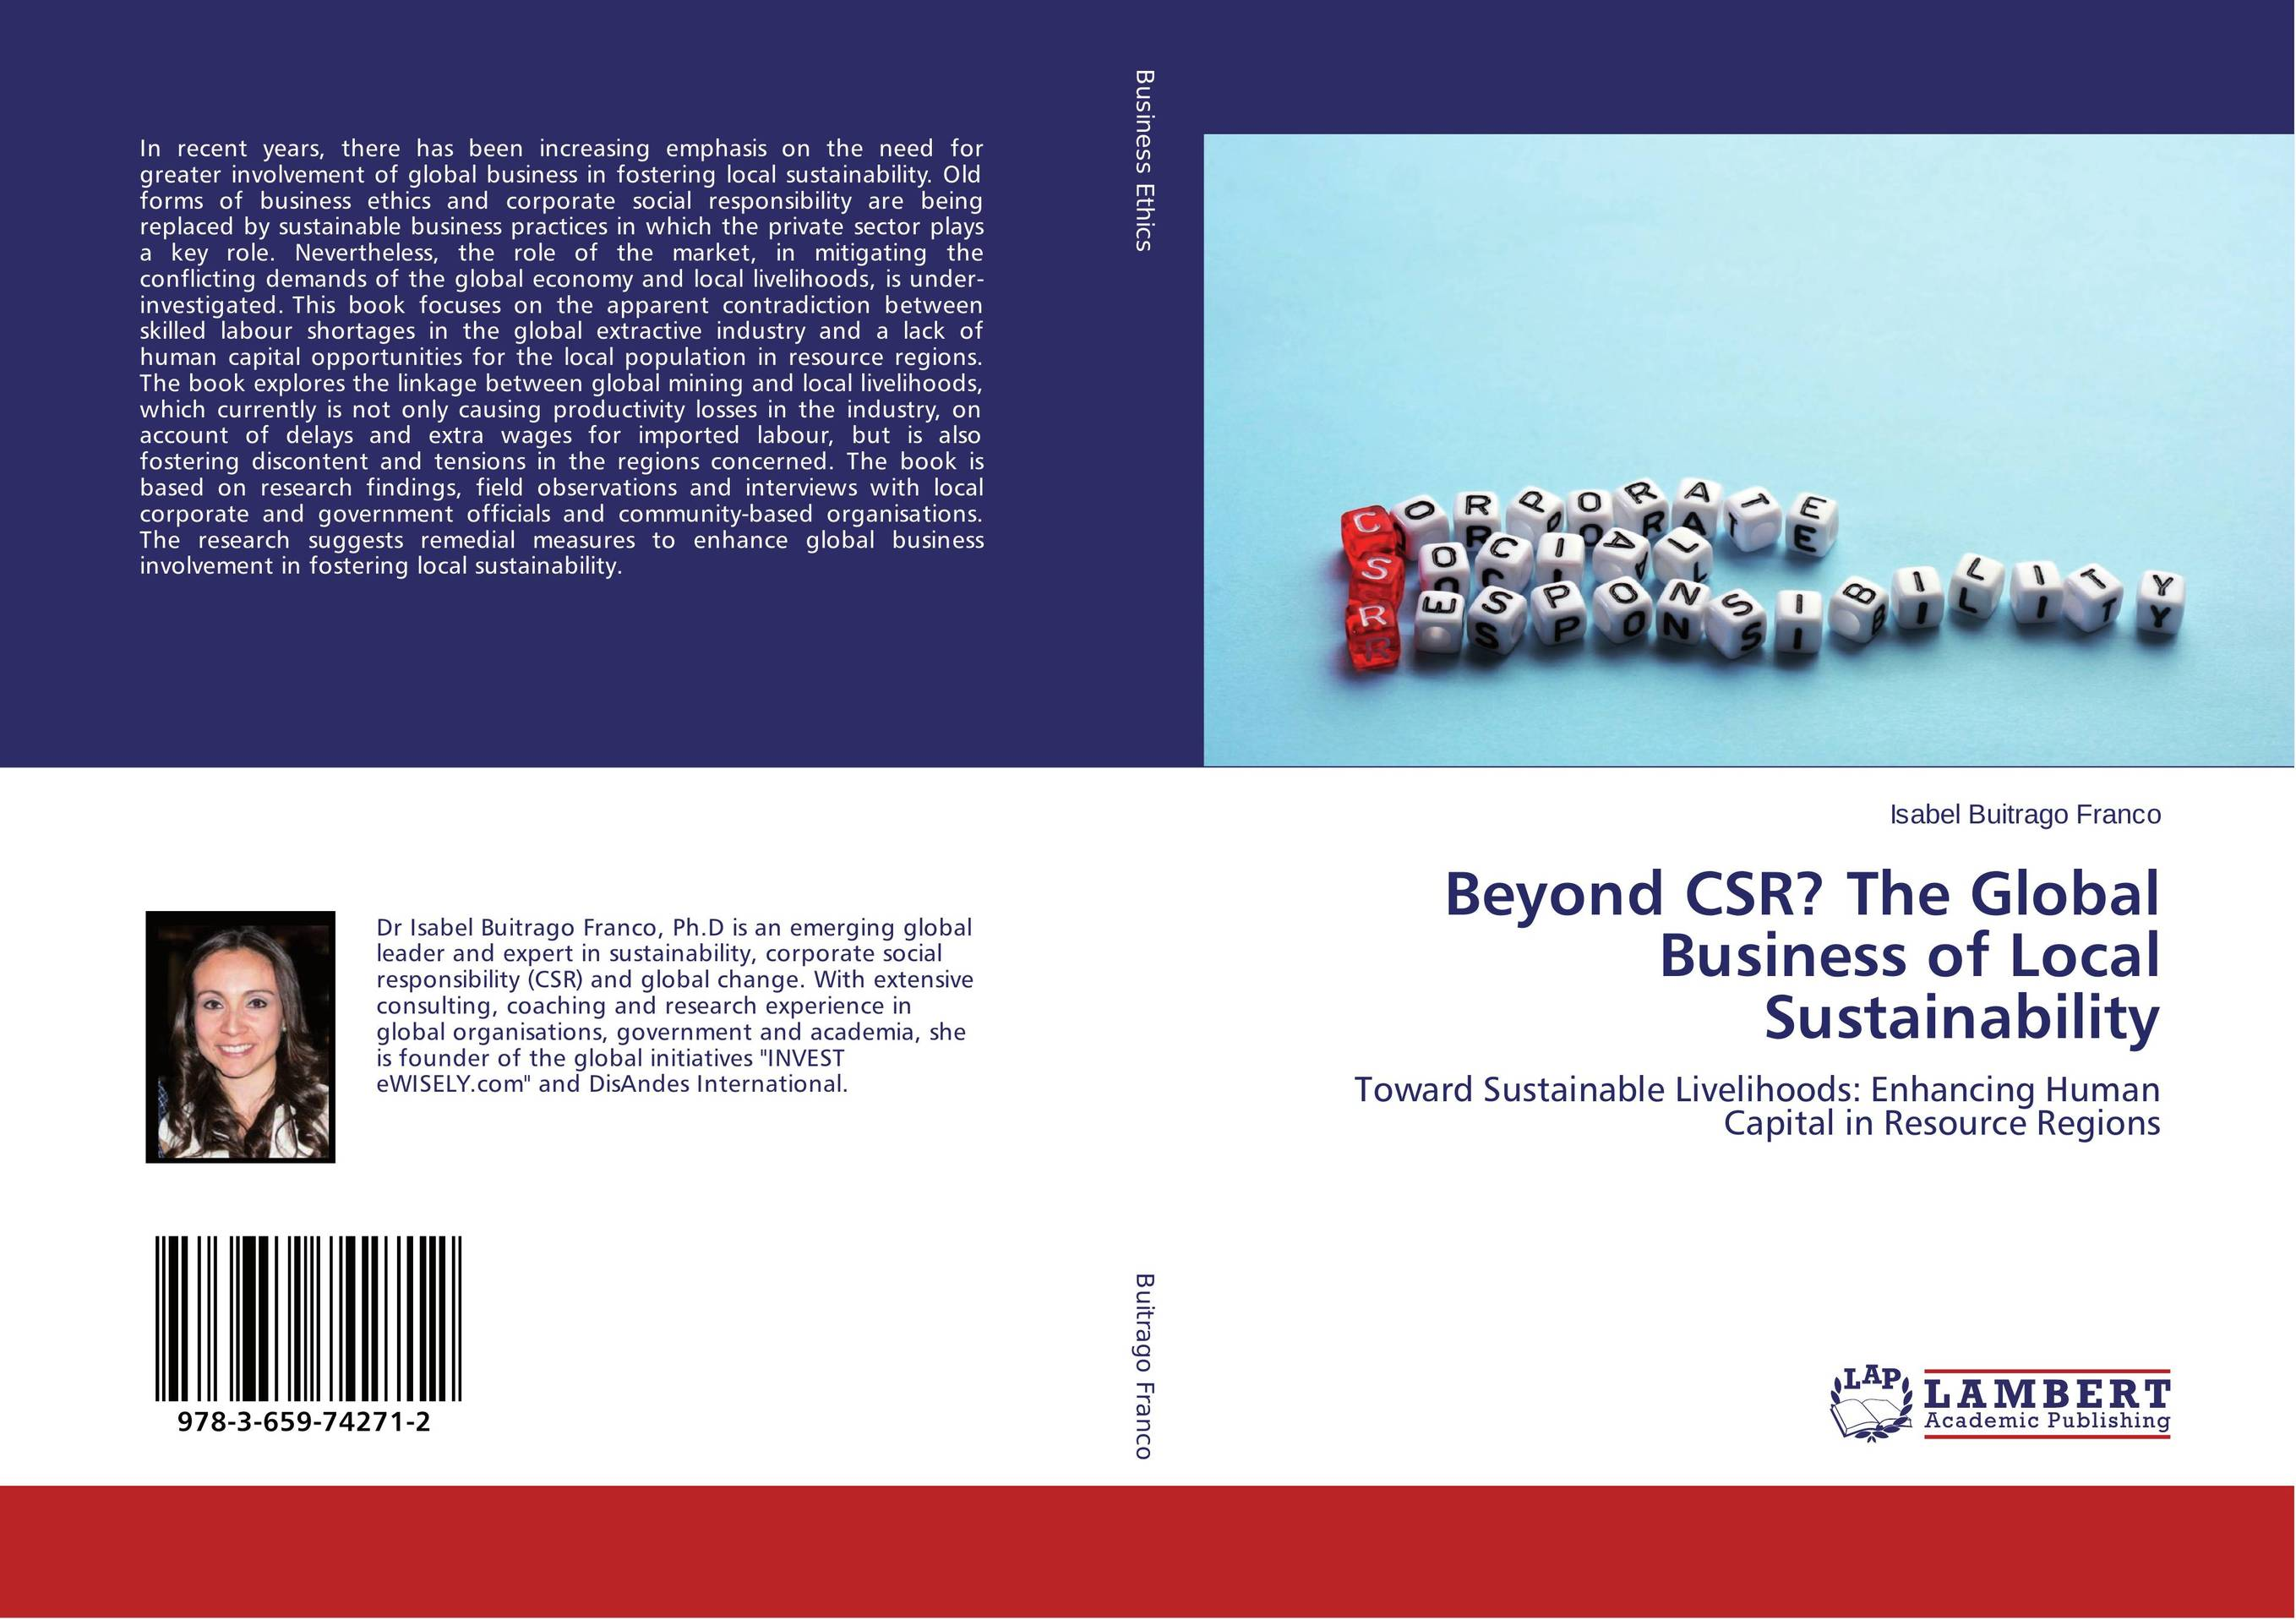 Beyond CSR? The Global Business of Local Sustainability the application of global ethics to solve local improprieties